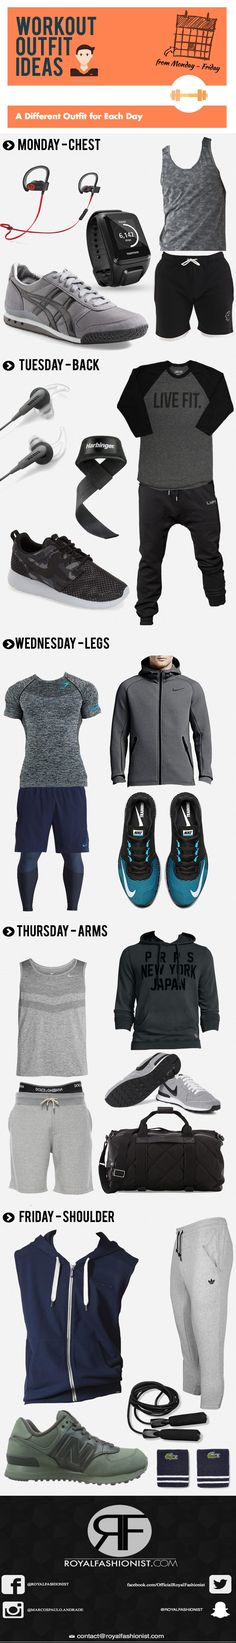 Men's Gym Style 2016: The Best Workout Clothes For The Year